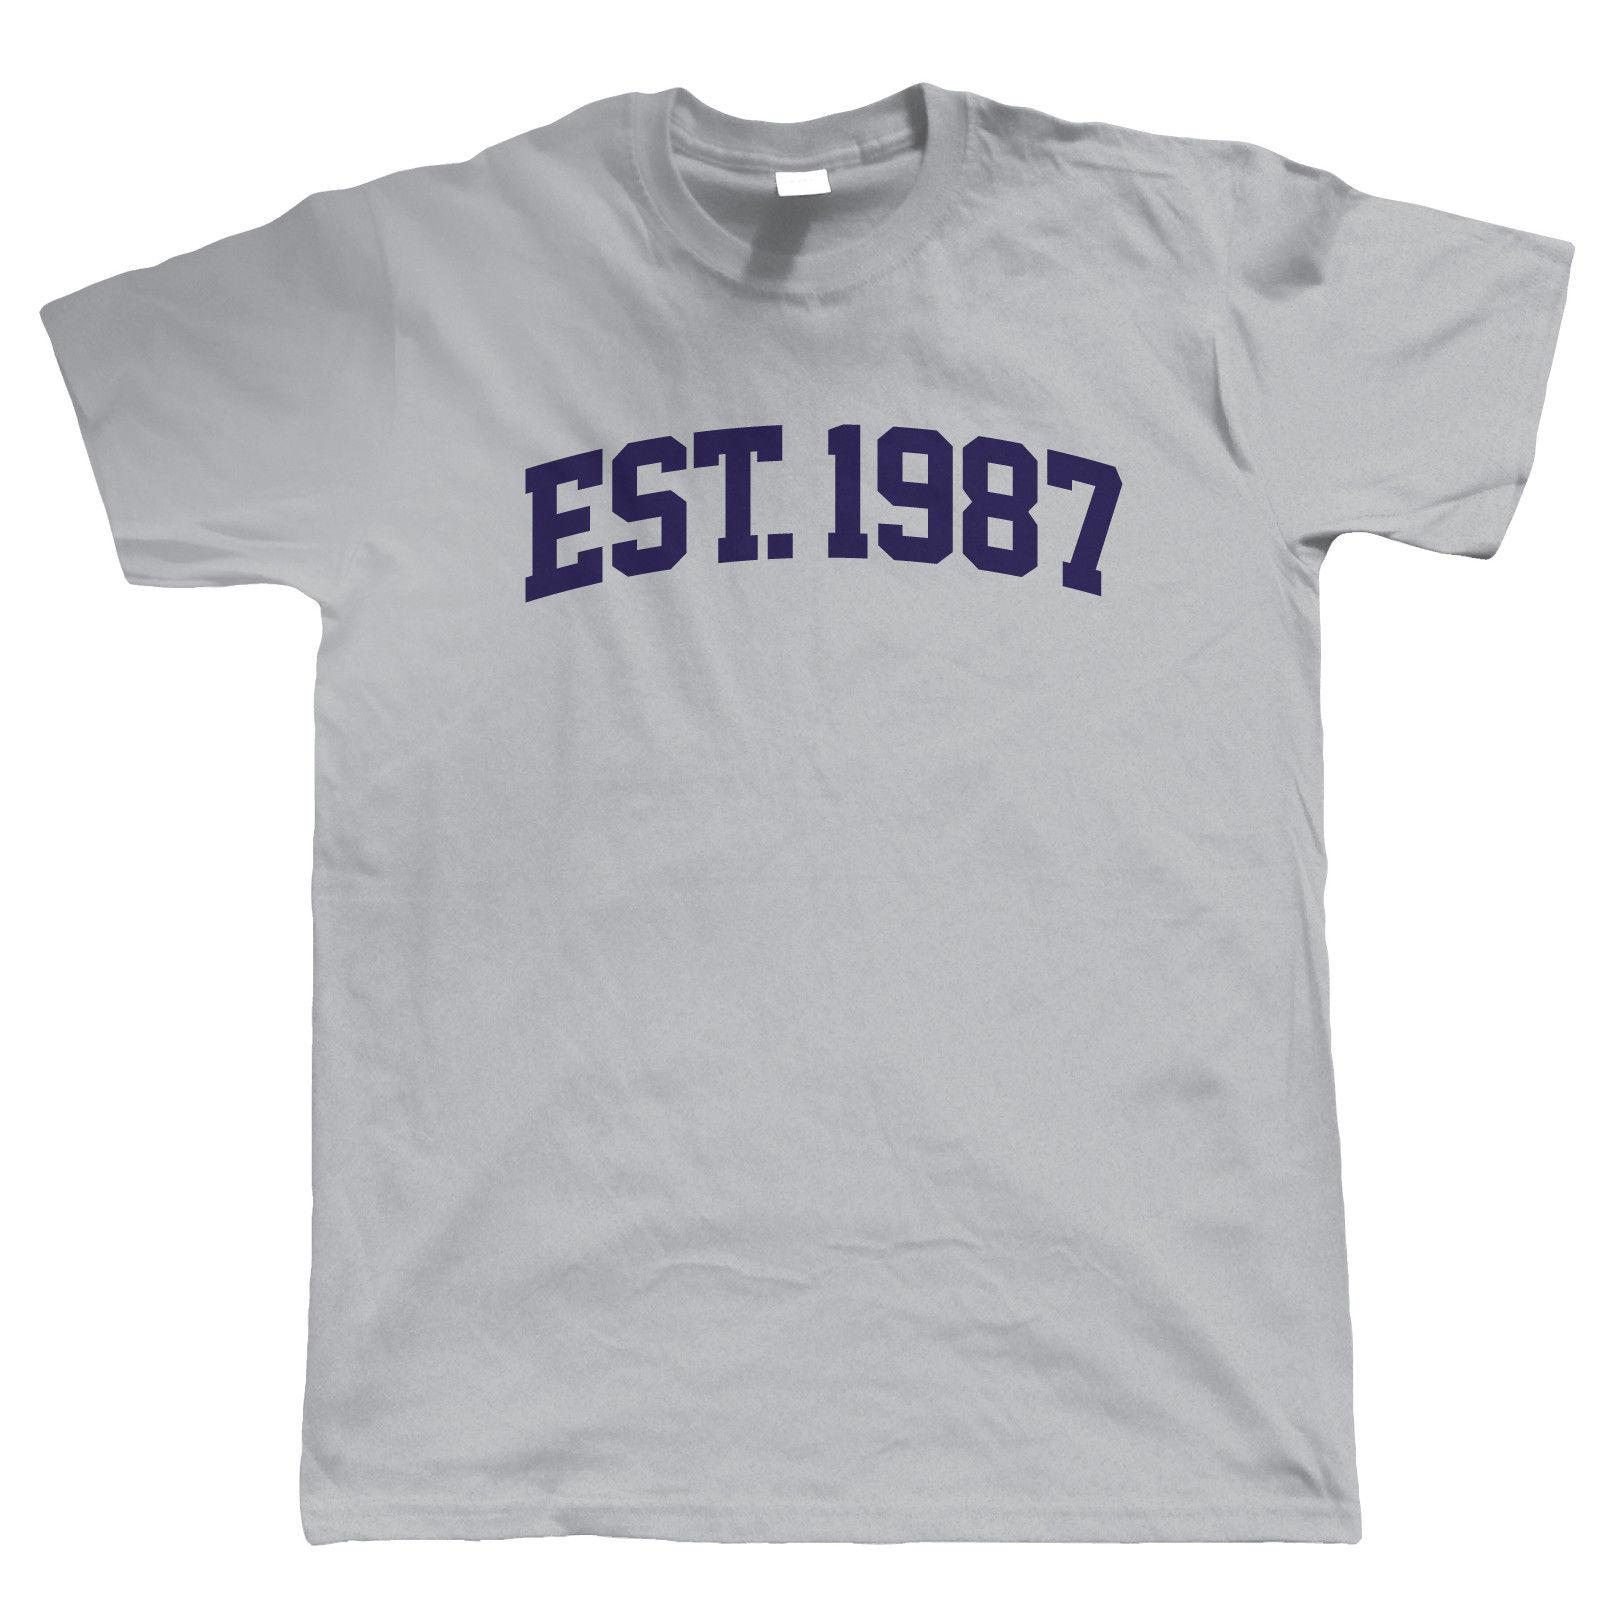 Established 1987 Mens T Shirt Gift 30th Birthday For Him Dad